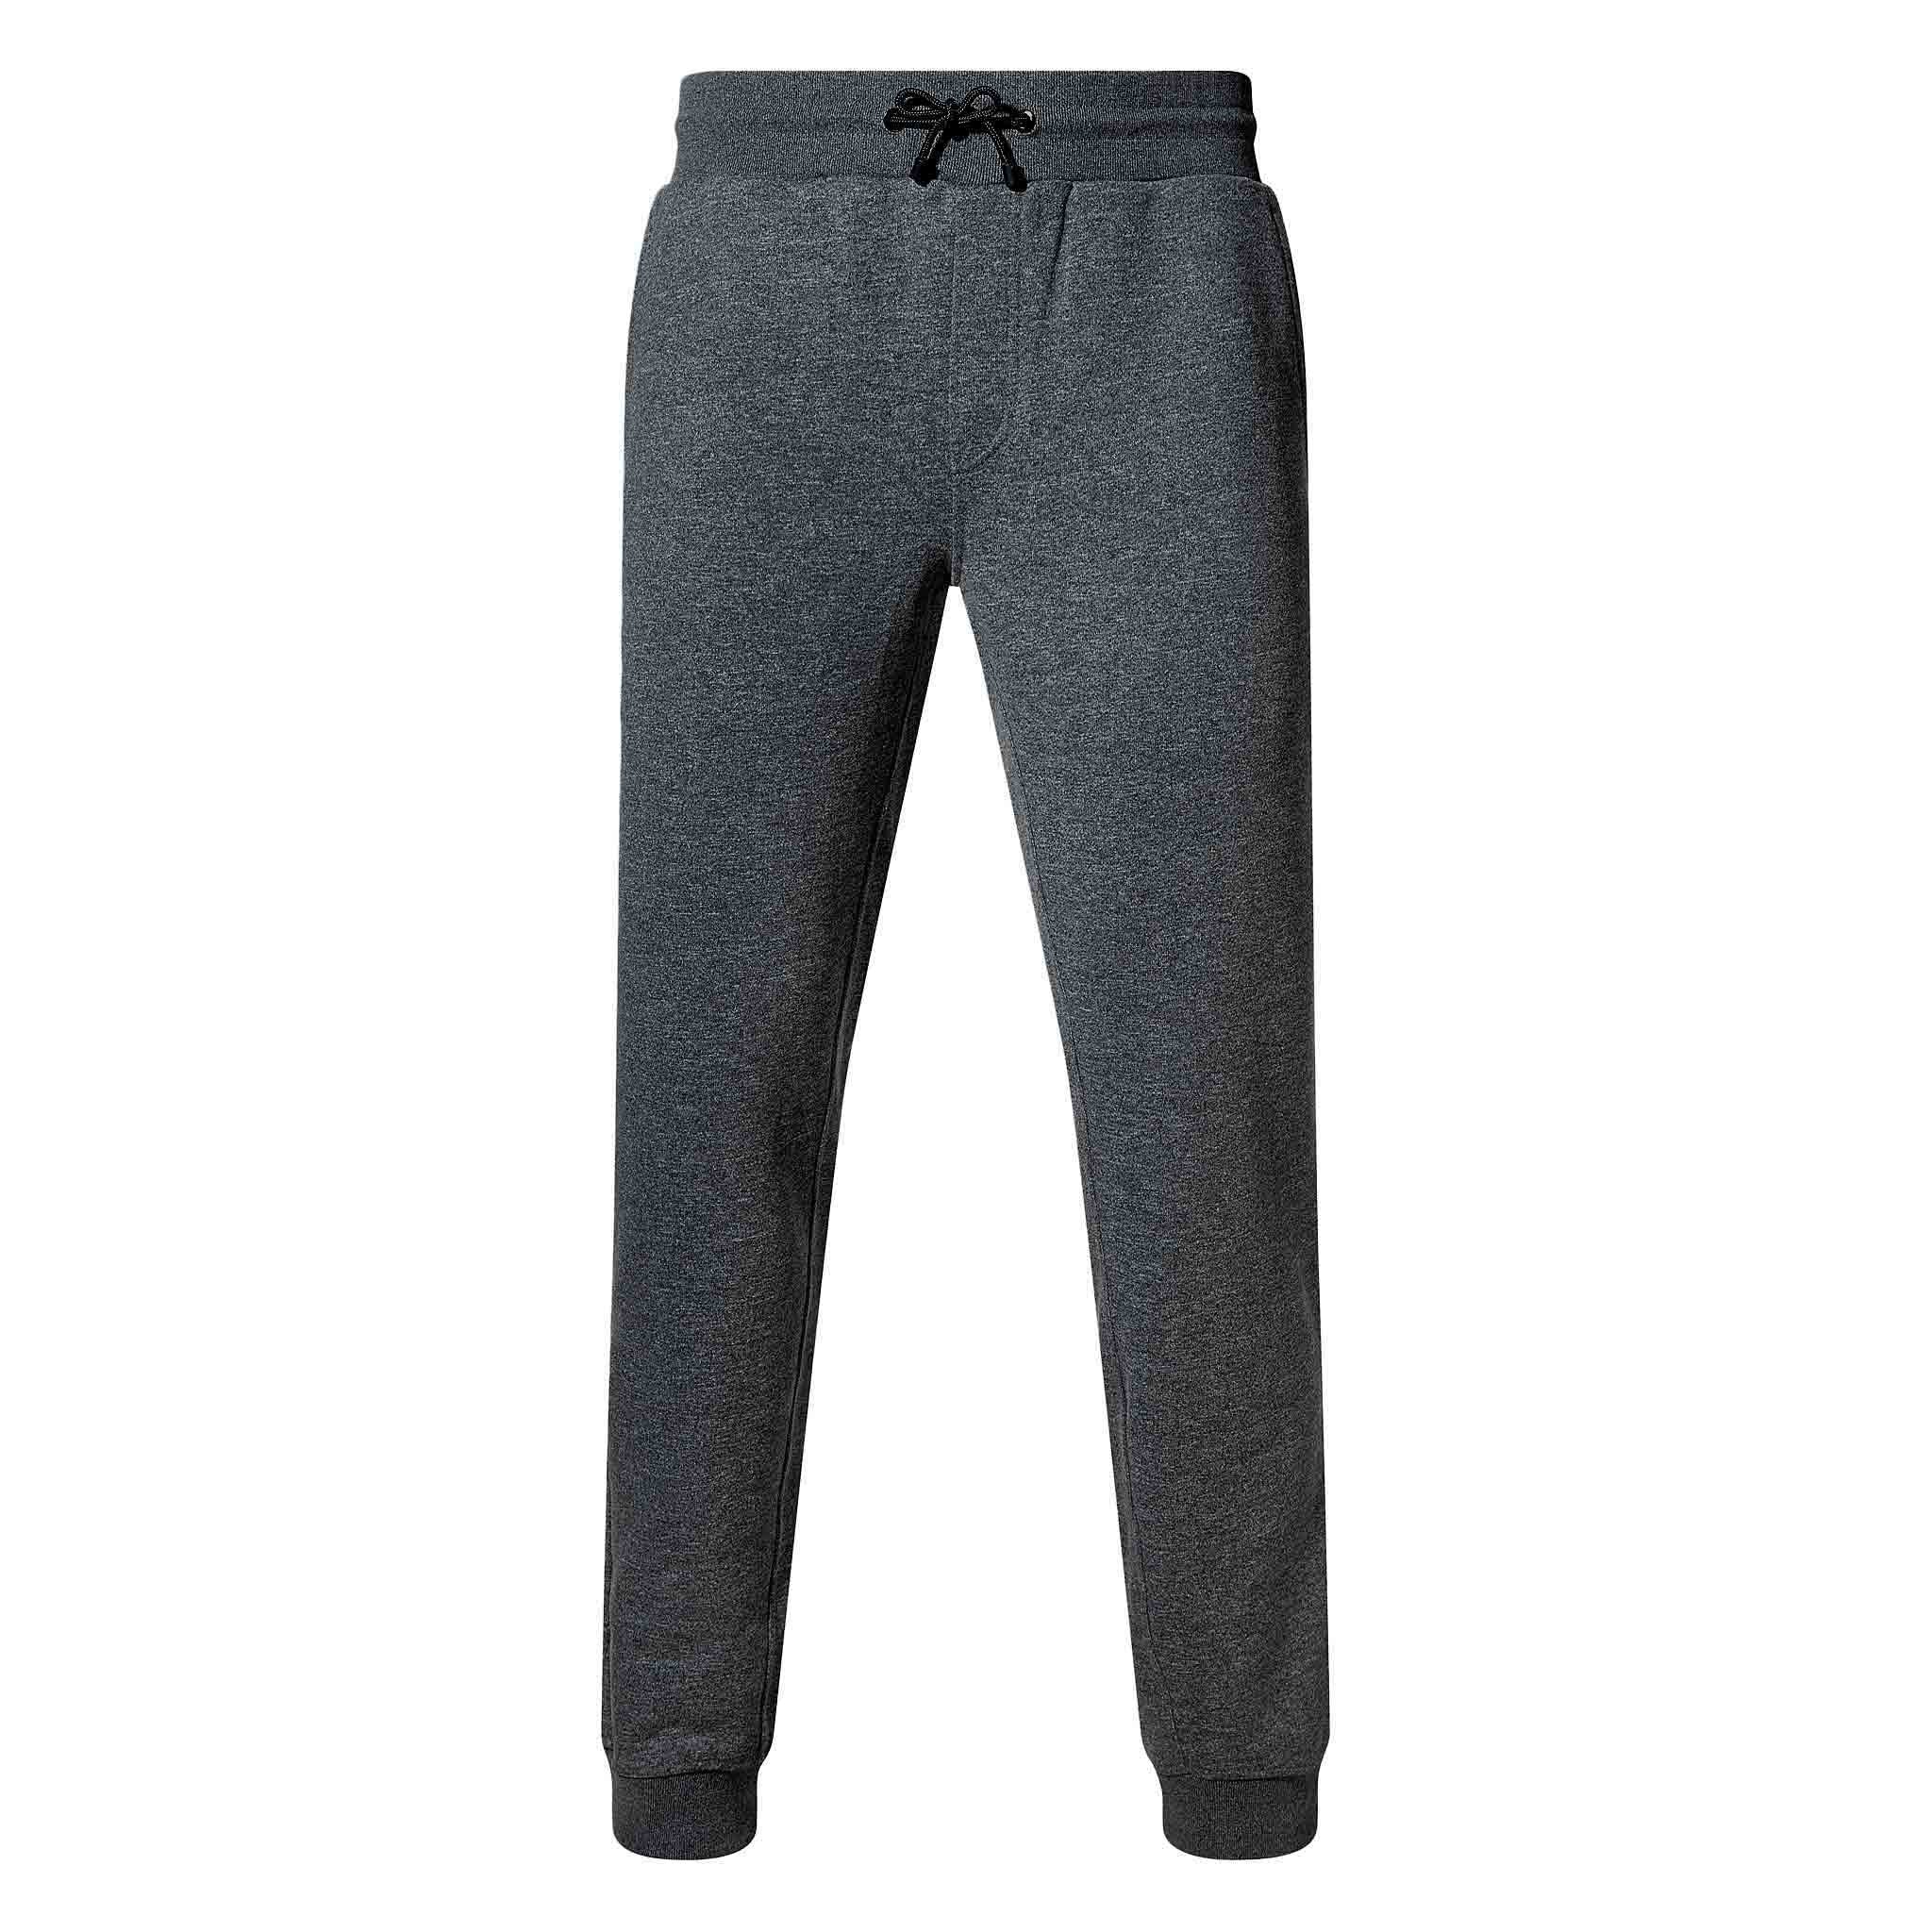 Onslow pebble grey post-run sweatpants